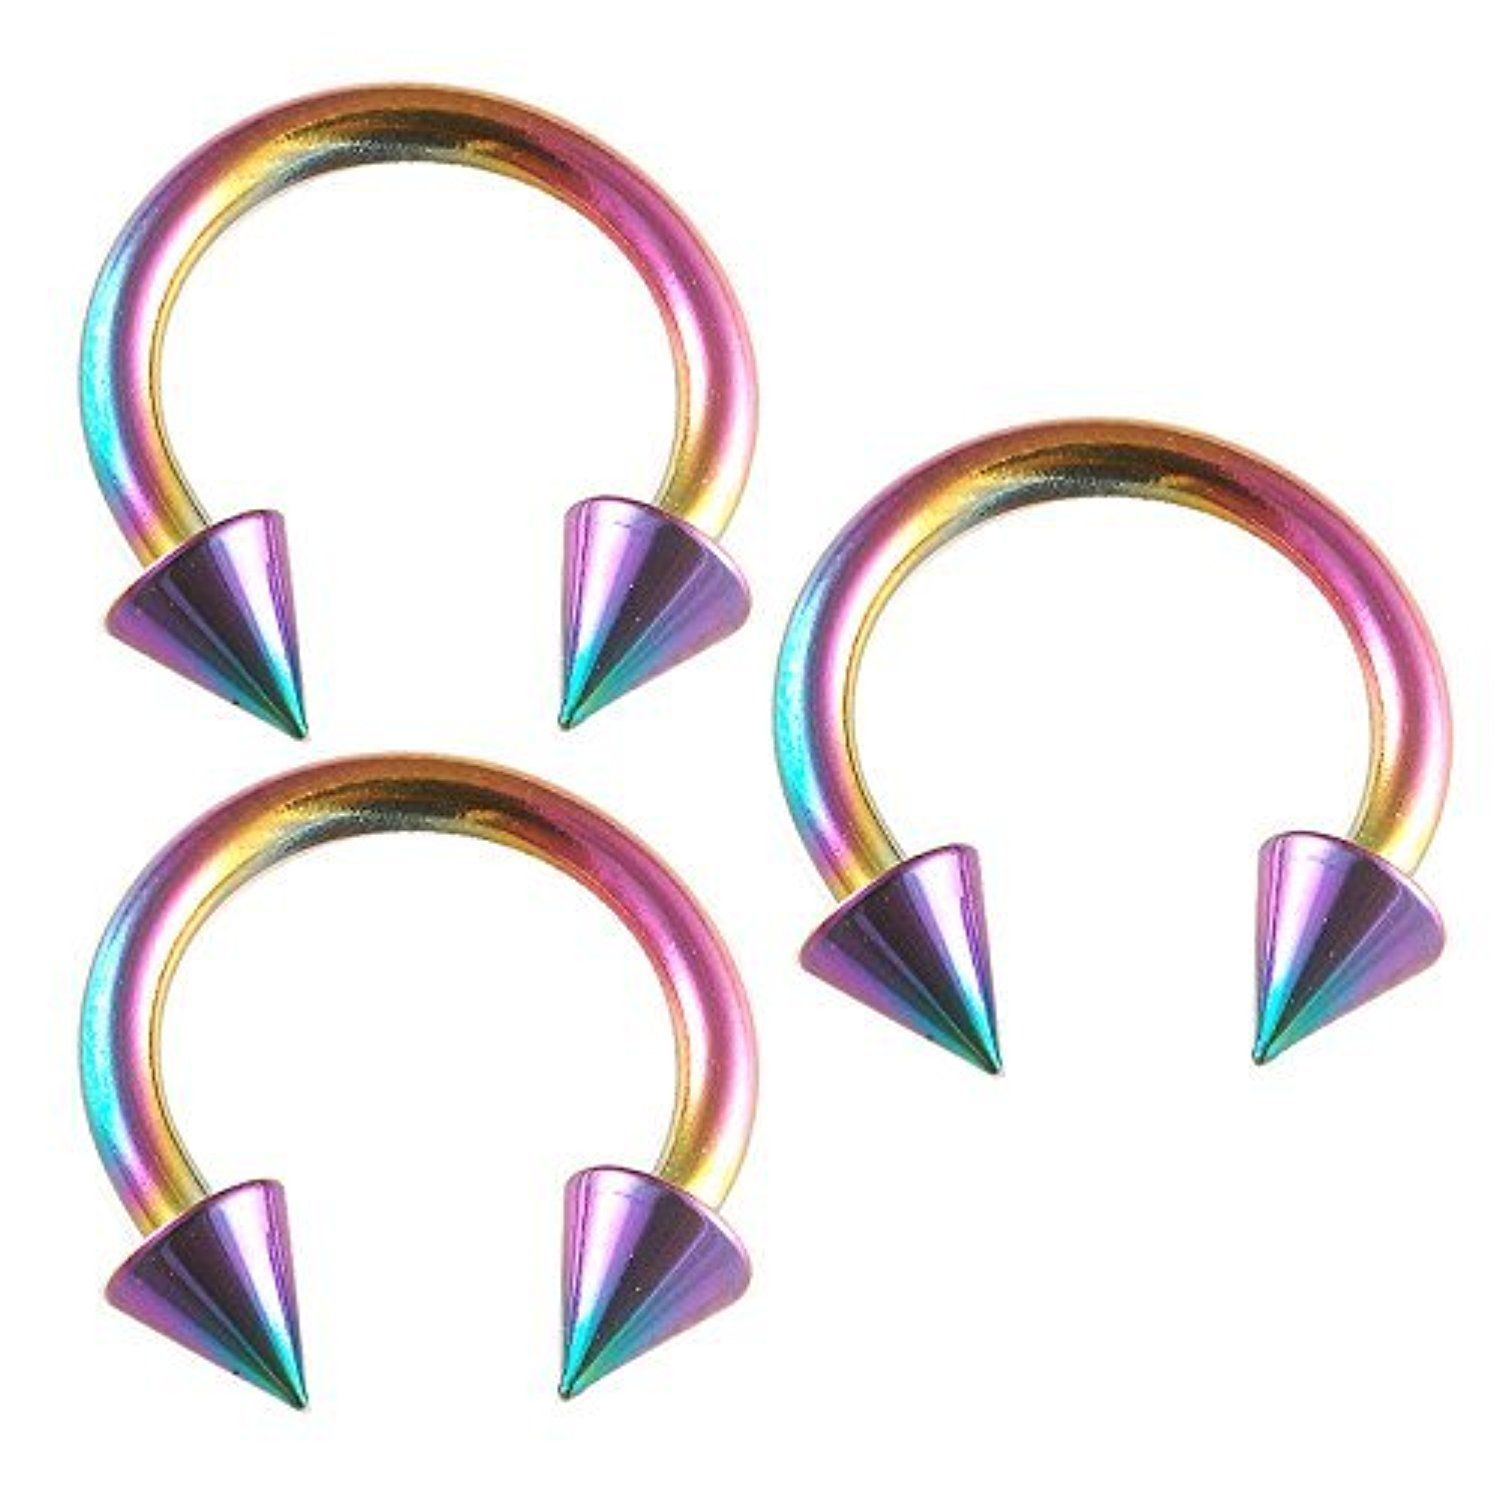 8 Inch 10mm Long Rainbow Color Anodized